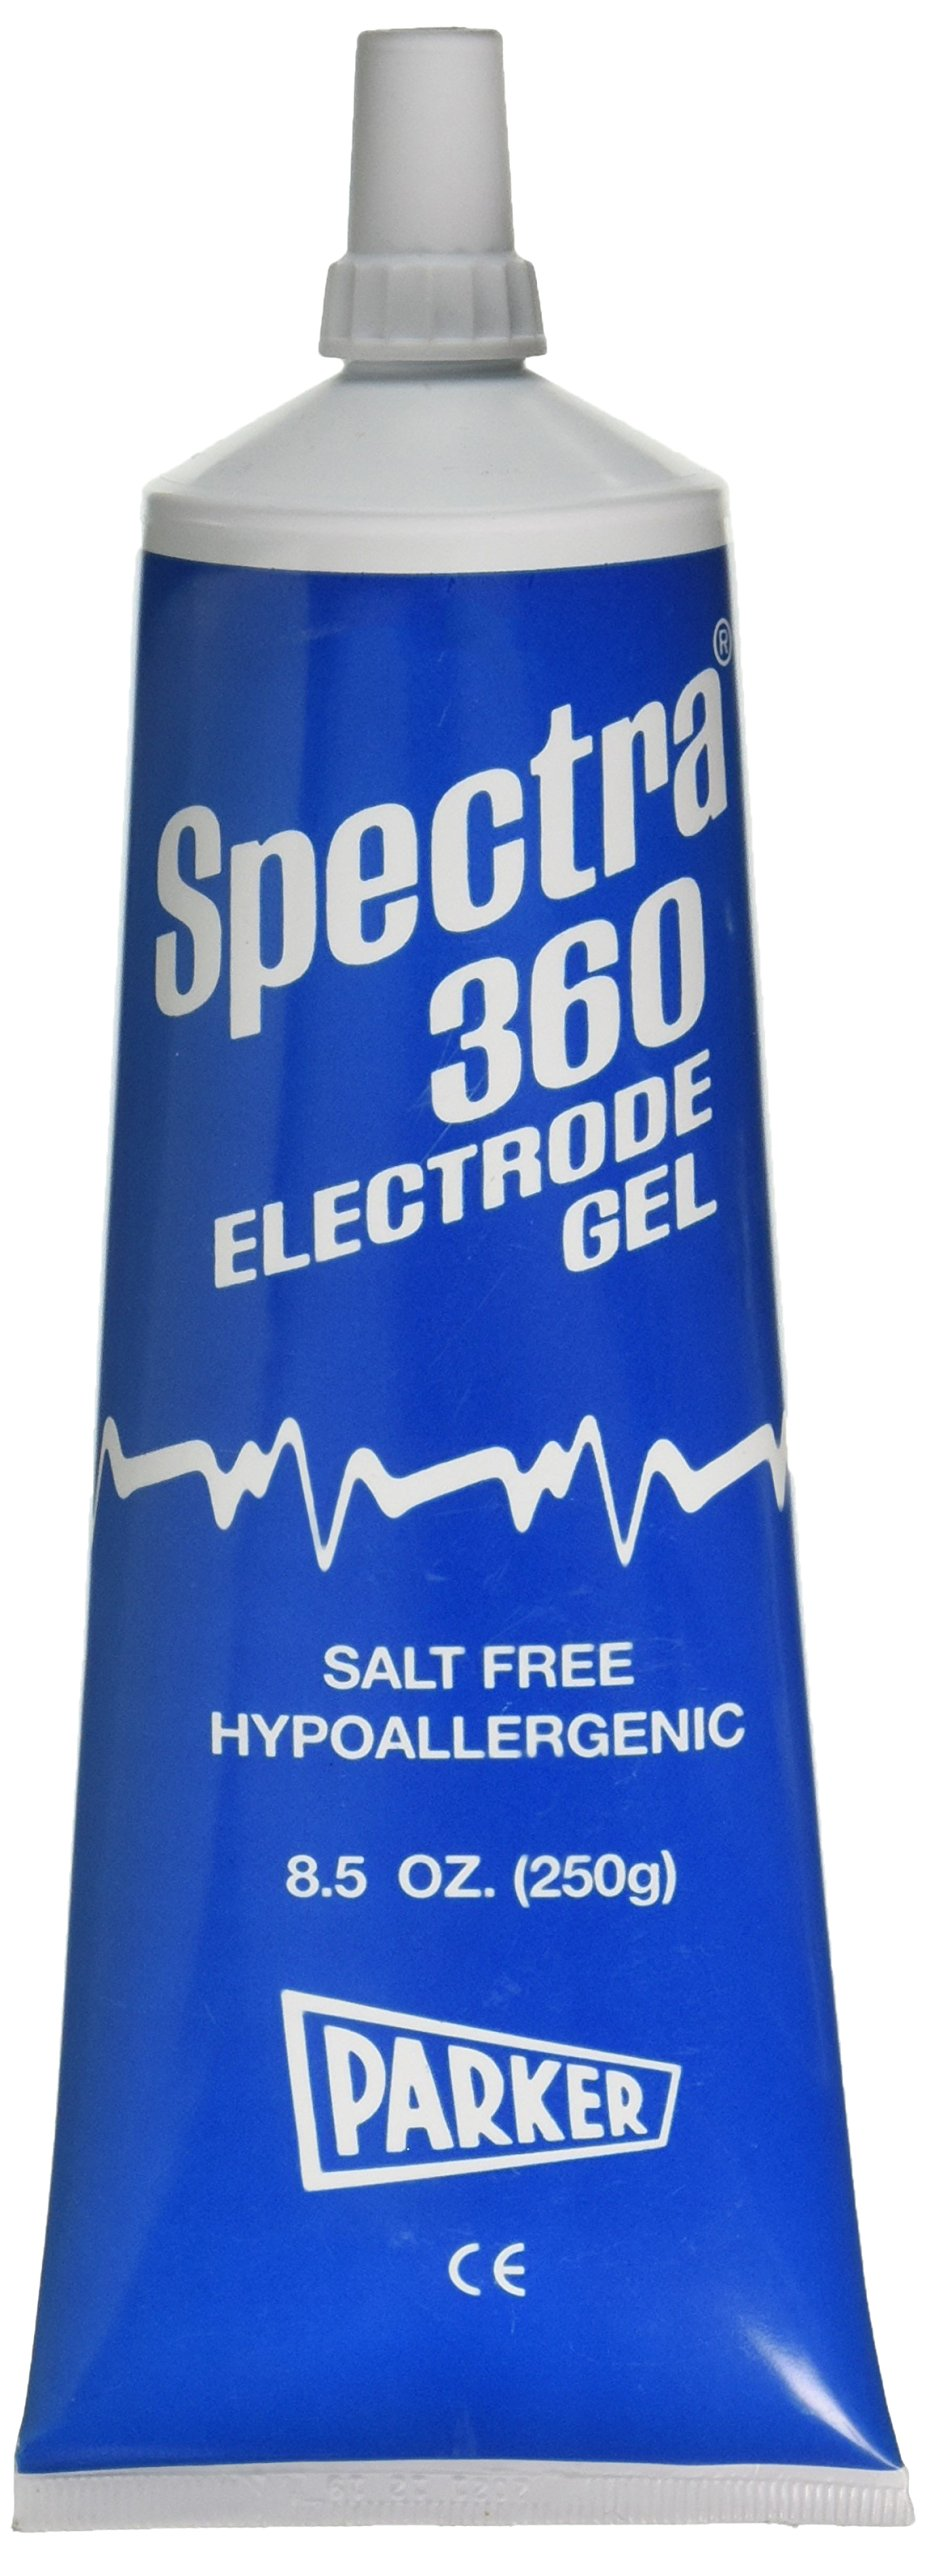 Spectra 360 1208 Electrode Gel - Parker Laboratories - 8.5 oz Tube - (Pack of 3)